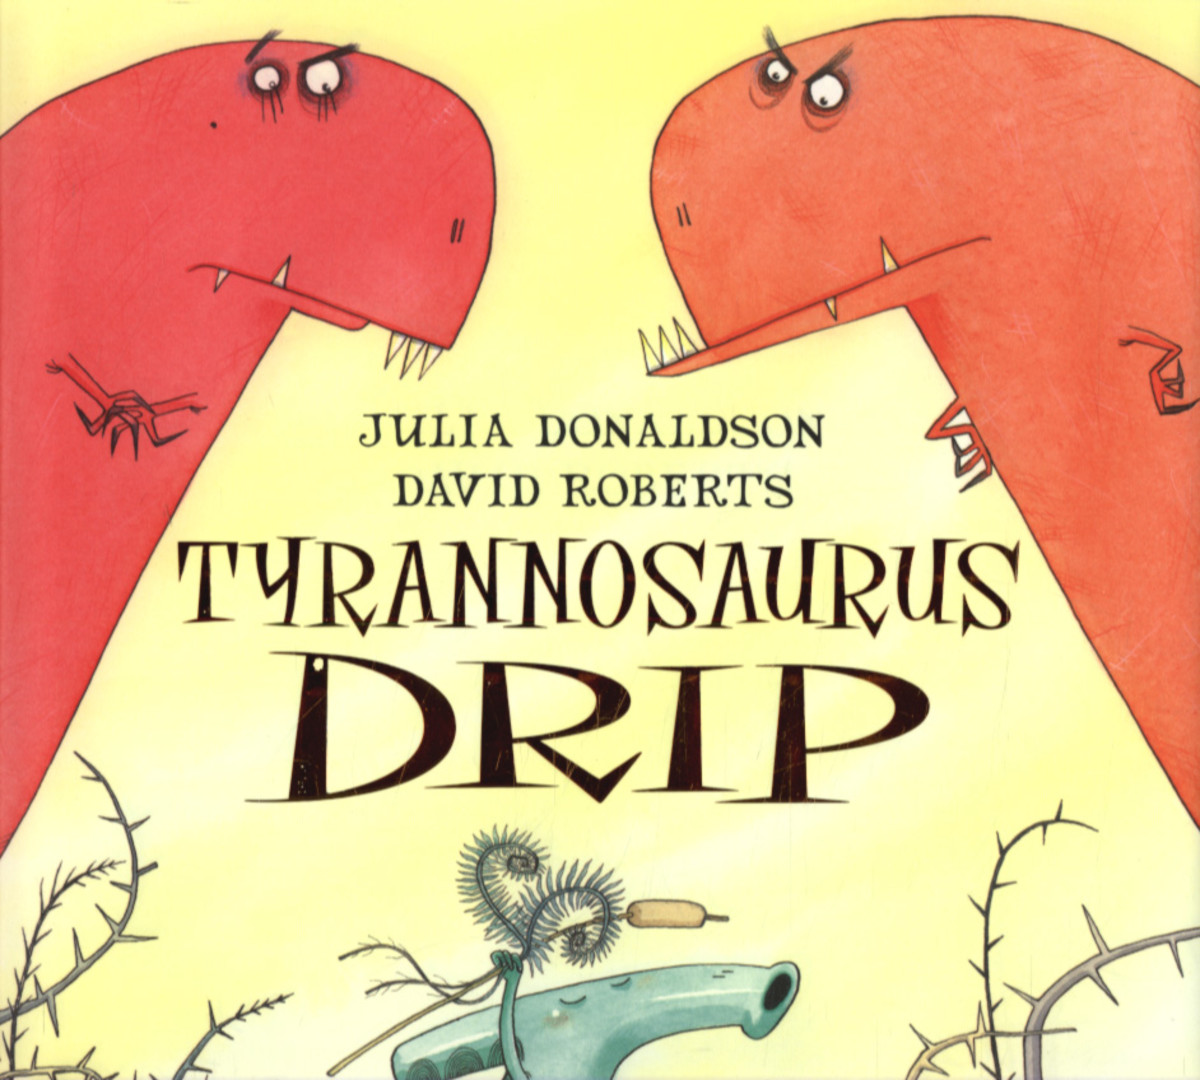 Learning Activities to Accompany Tyrannosaurus Drip